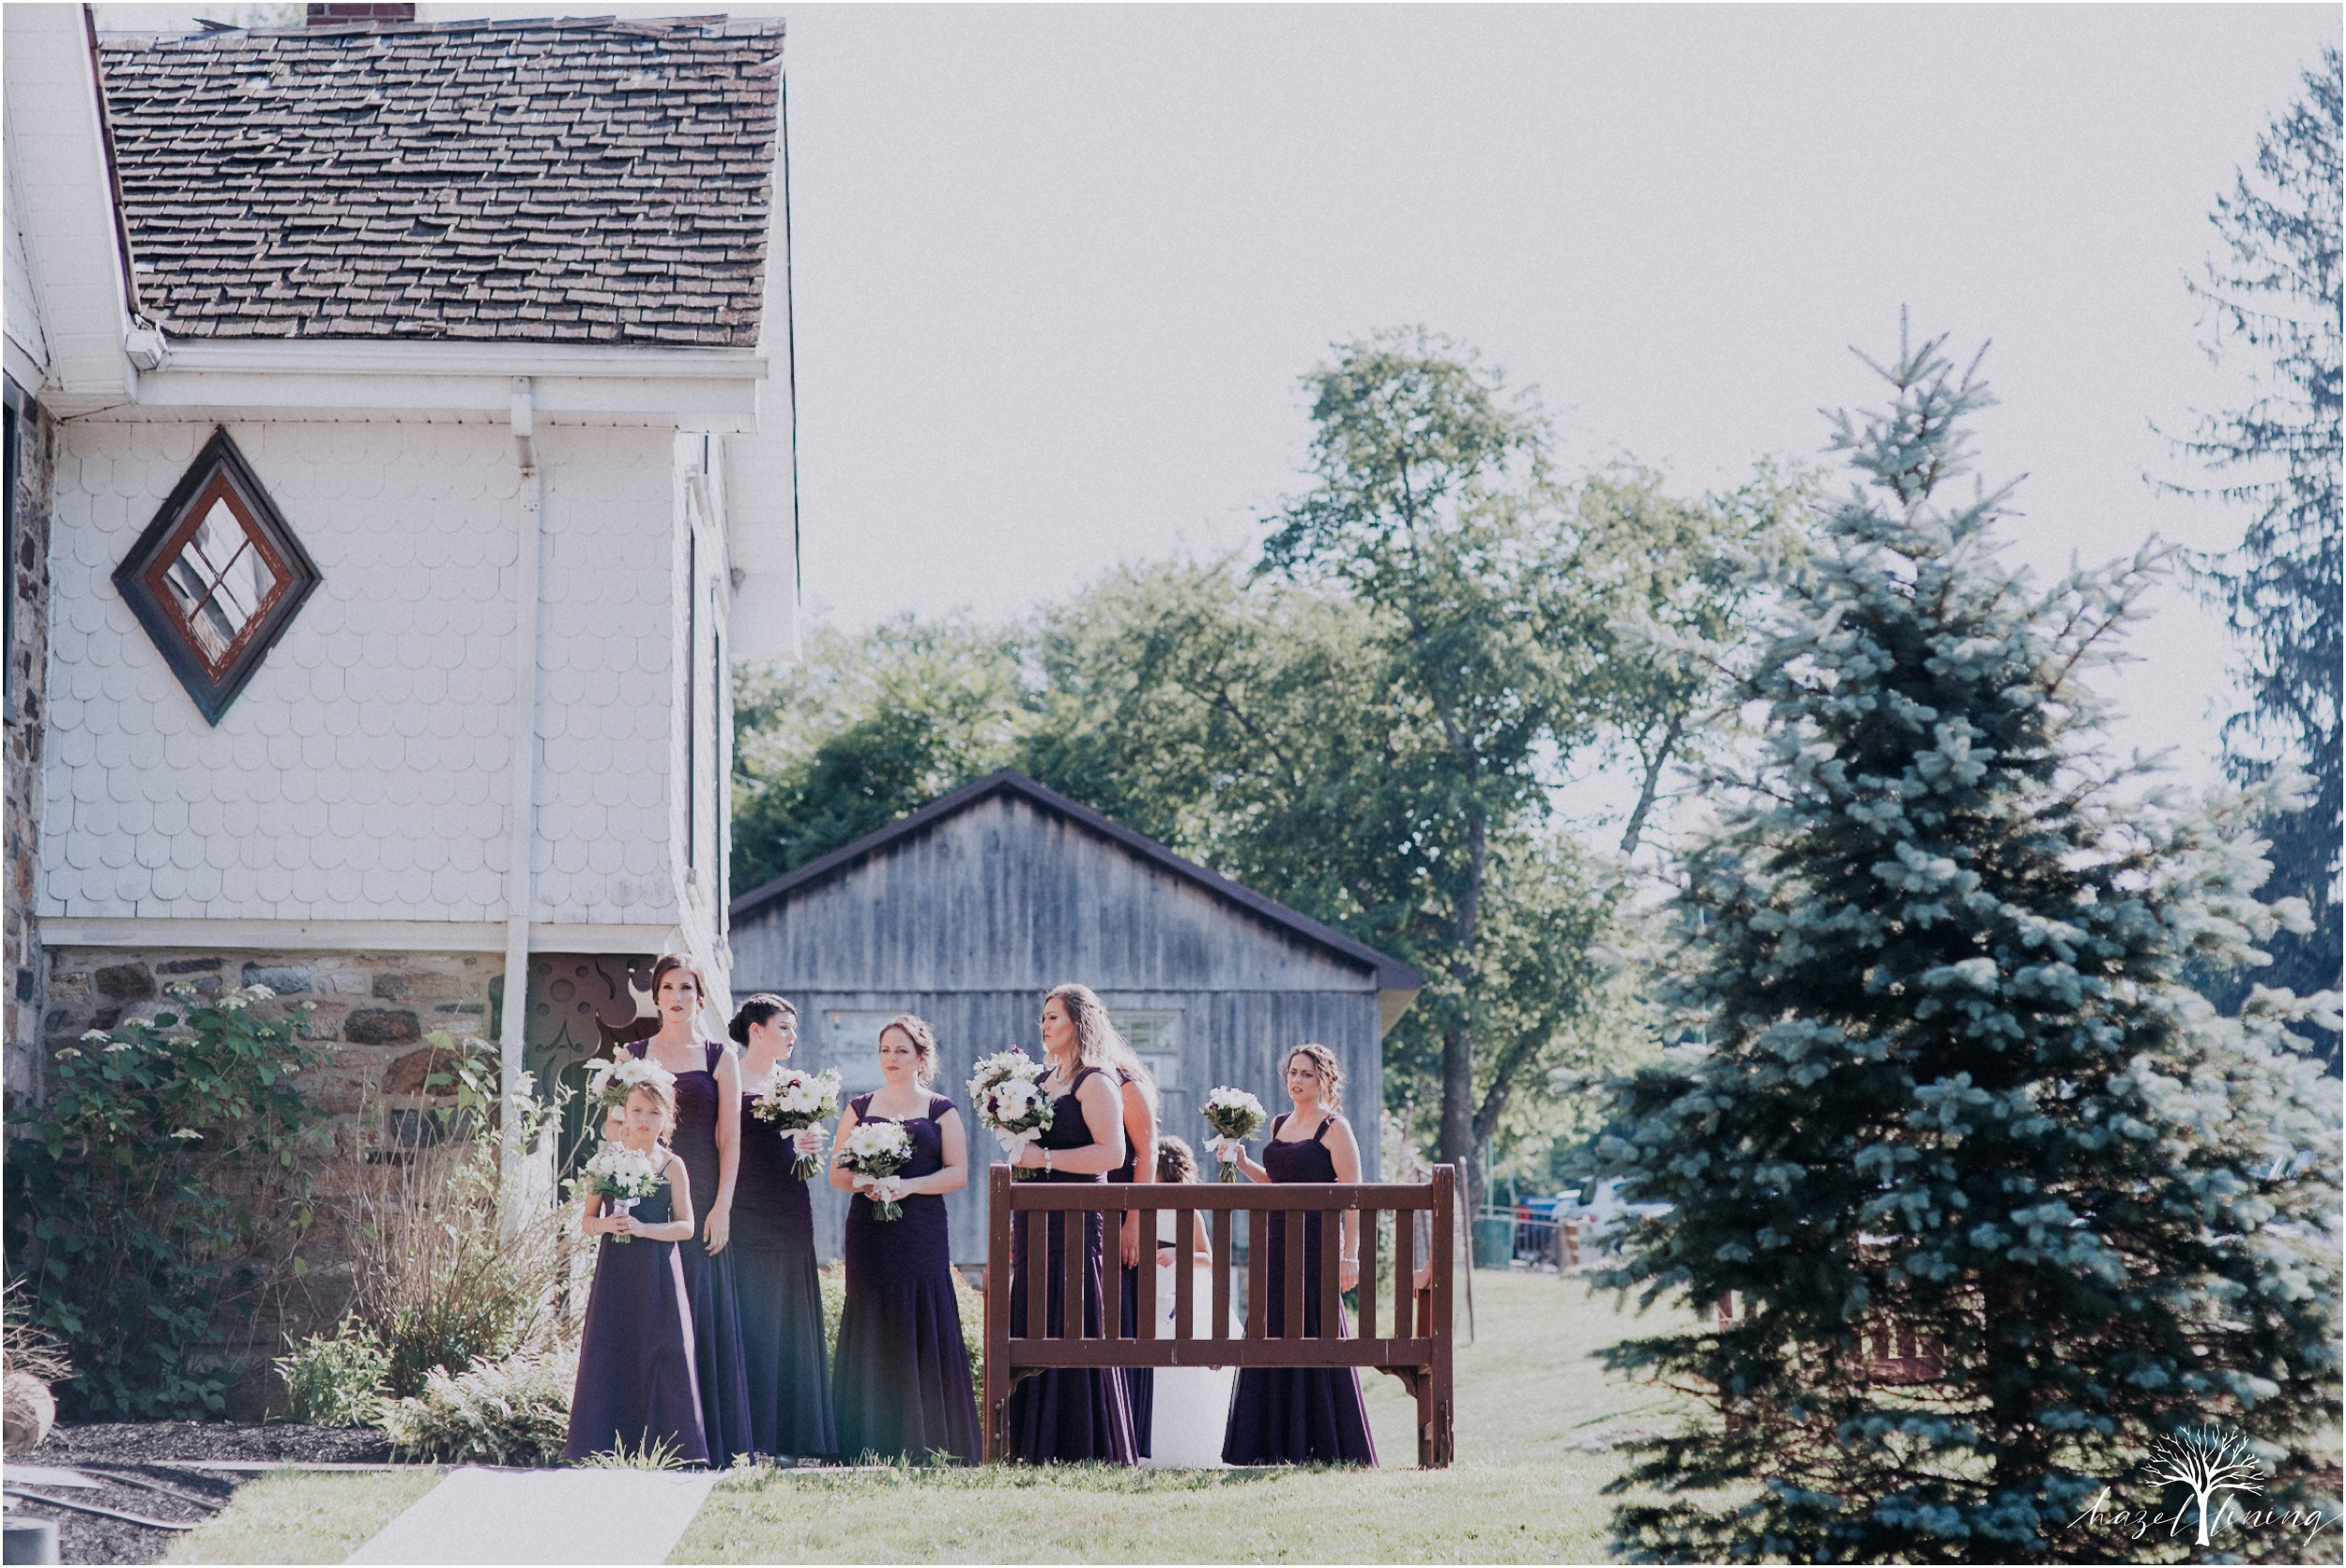 cassie-depinto-tyler-bodder-playwicki-farm-buck-hotel-featserville-trevose-pennsylvania-summer-outdoor-wedding-hazel-lining-travel-wedding-elopement-photography_0203.jpg